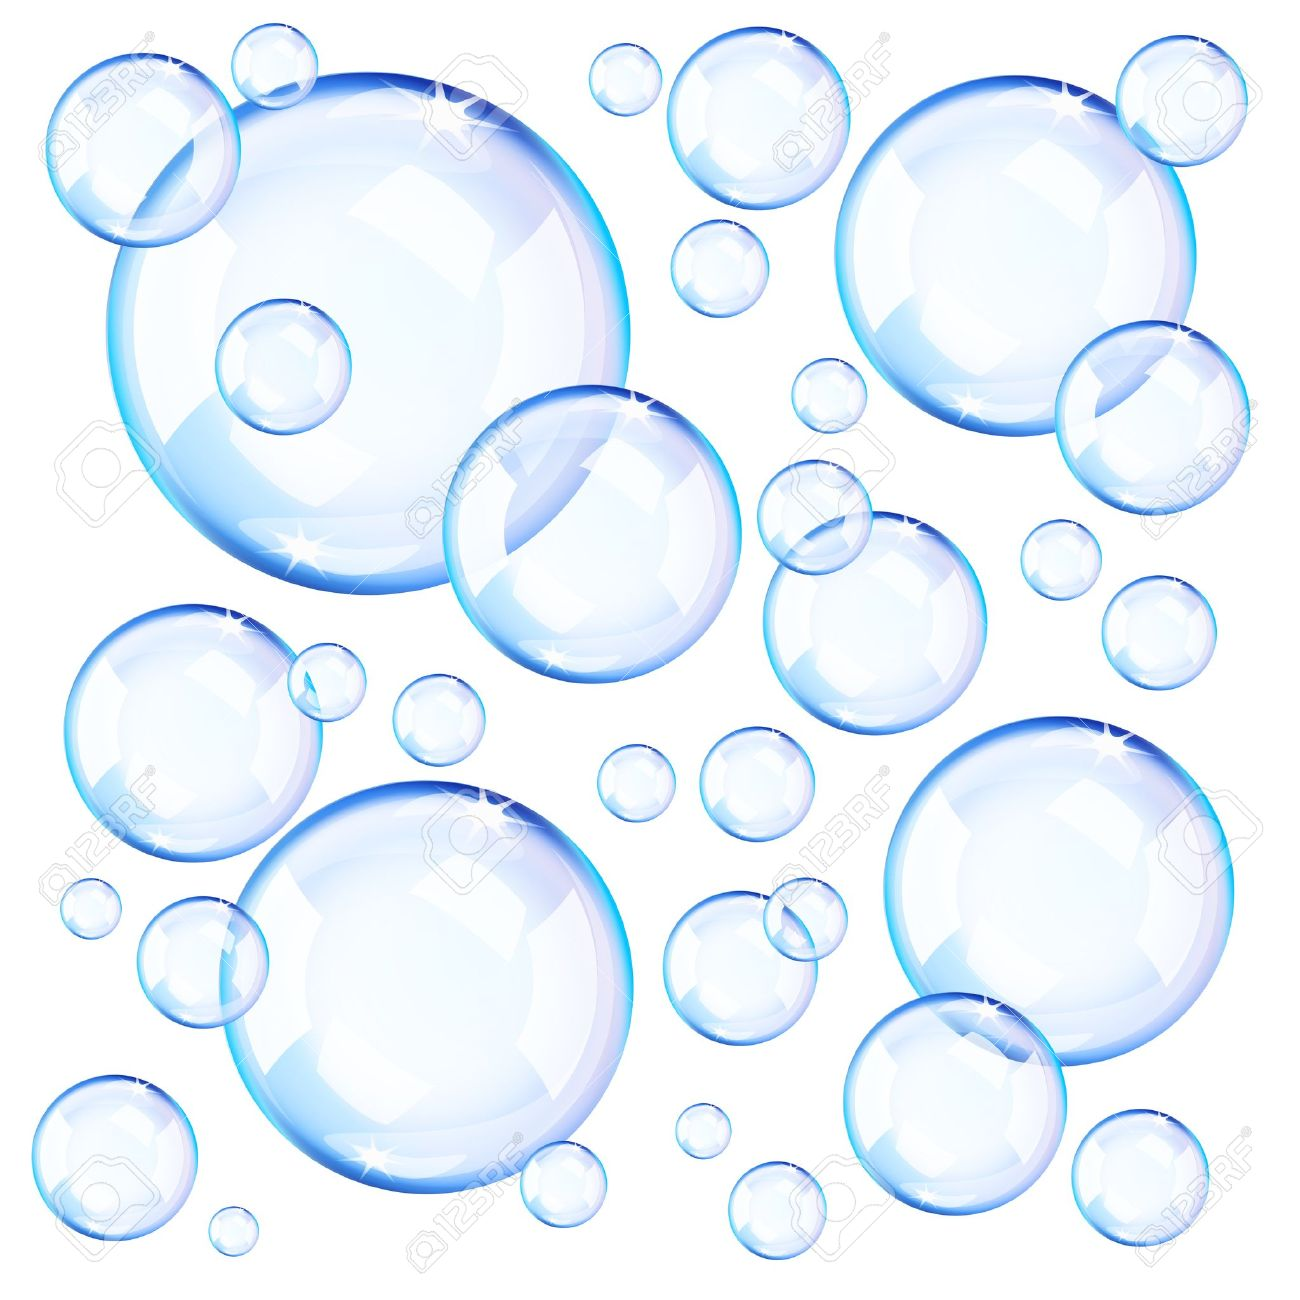 transparent blue soap bubbles over white background royalty free